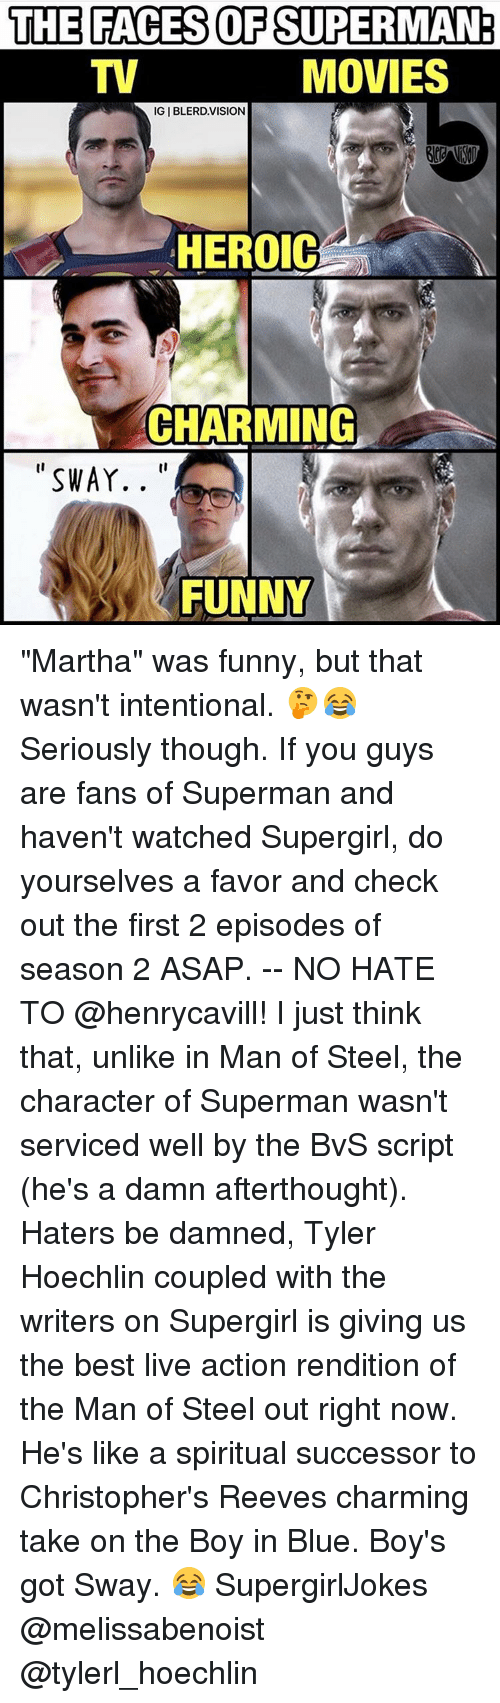 "tyler hoechlin: THE FACES OF SUPERMAN  MOVIES  IGIBLERD. VISION  HEROIC  CHARMING  SWAY.  FUNNY ""Martha"" was funny, but that wasn't intentional. 🤔😂 Seriously though. If you guys are fans of Superman and haven't watched Supergirl, do yourselves a favor and check out the first 2 episodes of season 2 ASAP. -- NO HATE TO @henrycavill! I just think that, unlike in Man of Steel, the character of Superman wasn't serviced well by the BvS script (he's a damn afterthought). Haters be damned, Tyler Hoechlin coupled with the writers on Supergirl is giving us the best live action rendition of the Man of Steel out right now. He's like a spiritual successor to Christopher's Reeves charming take on the Boy in Blue. Boy's got Sway. 😂 SupergirlJokes @melissabenoist @tylerl_hoechlin"